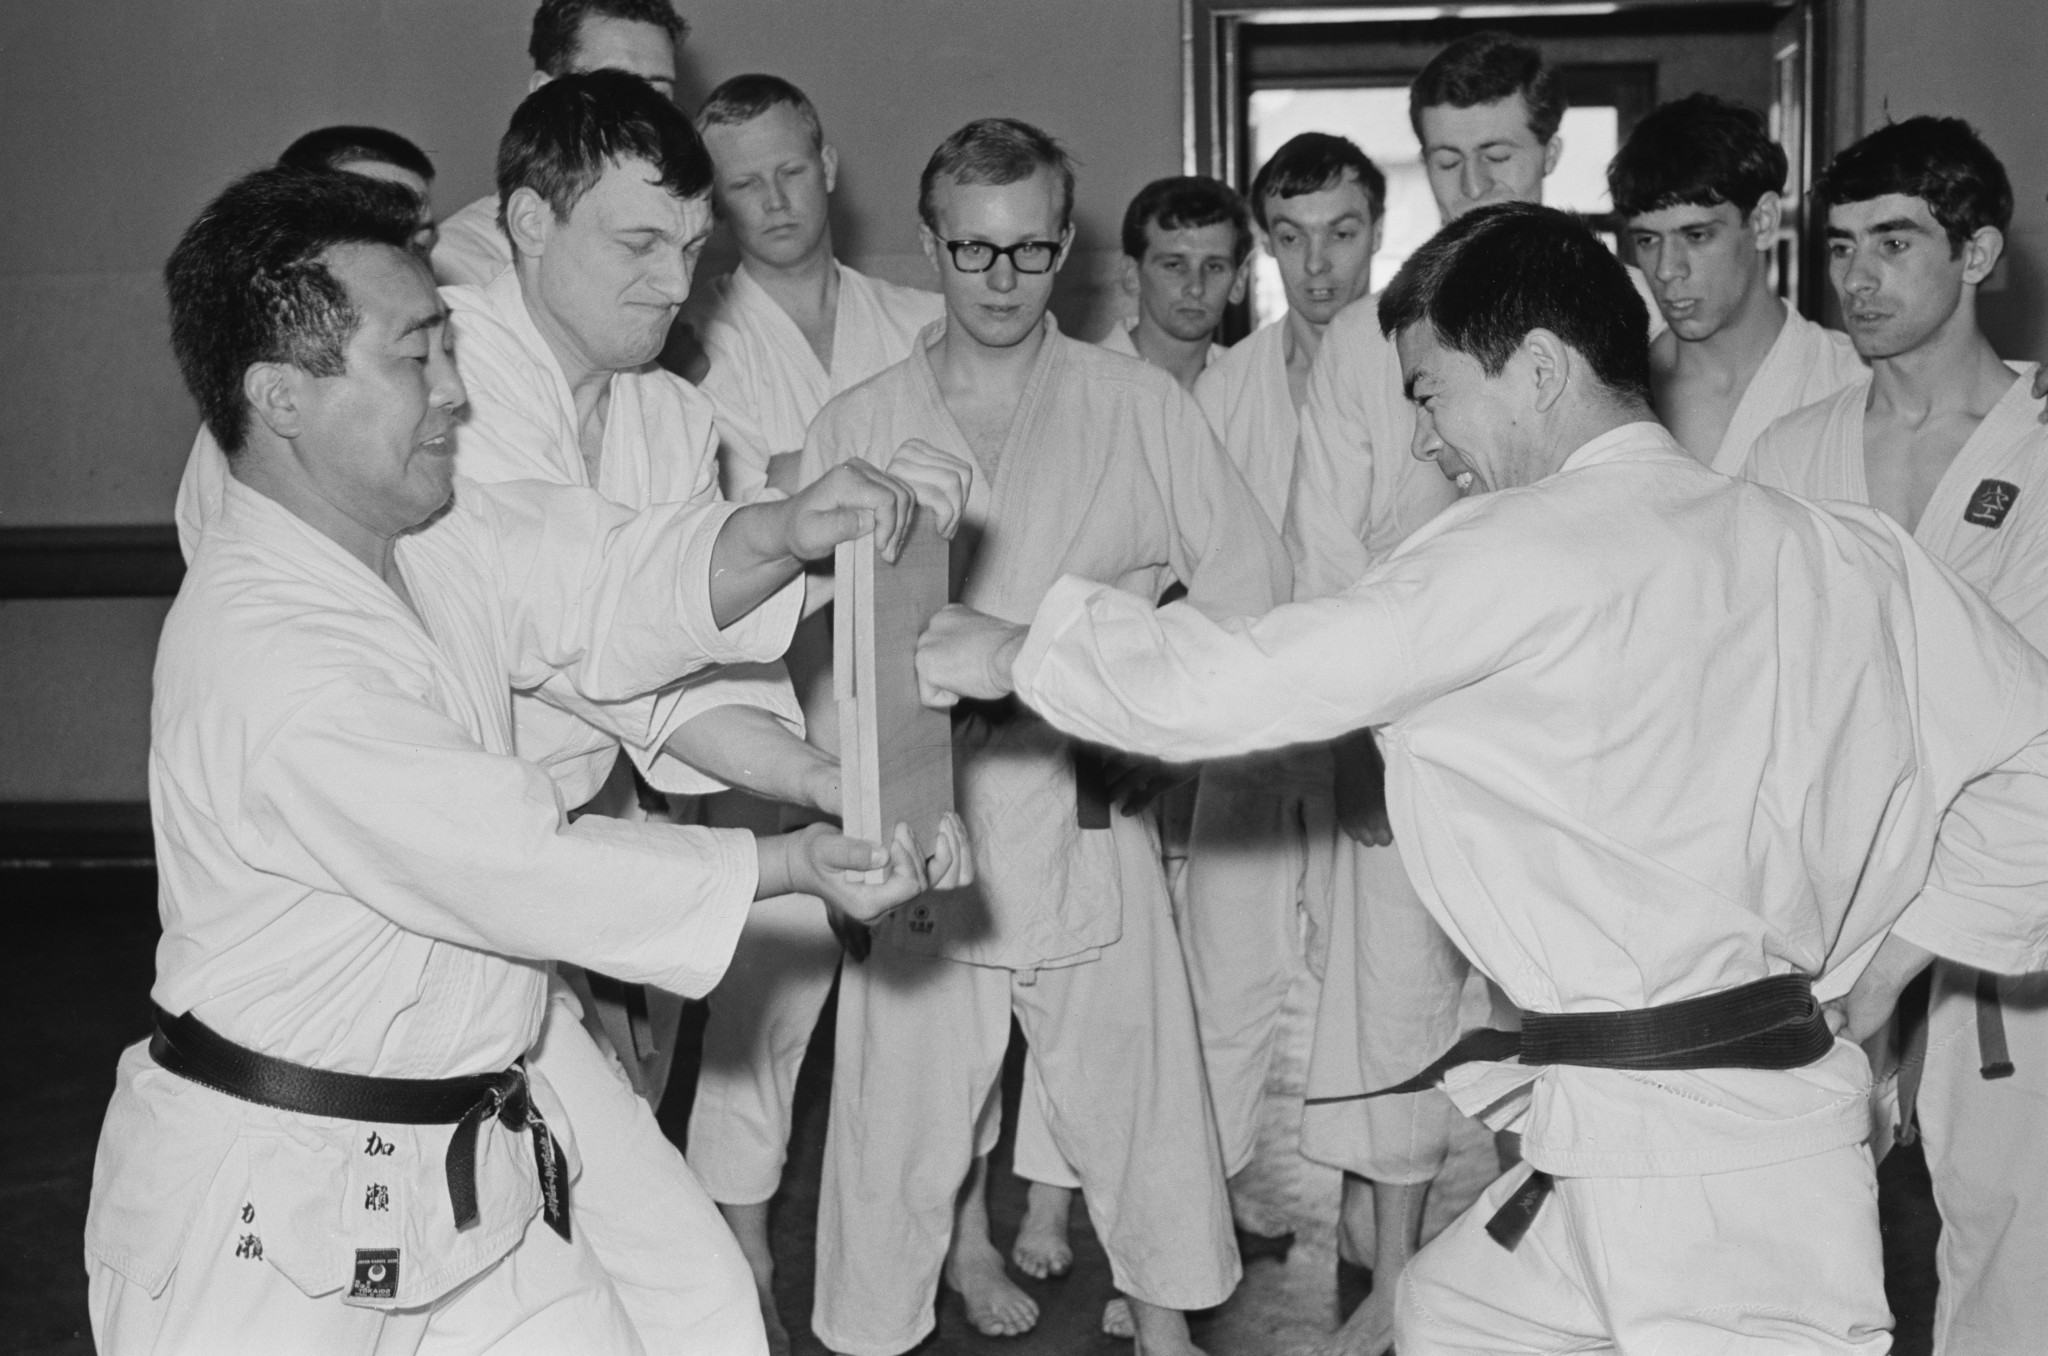 Japanese teacher of Shotokan karate Hirokazu Kanazawa demonstrating the breaking of a piece of wood in front of a group of students, UK, 2nd May 1965 ©Getty Images